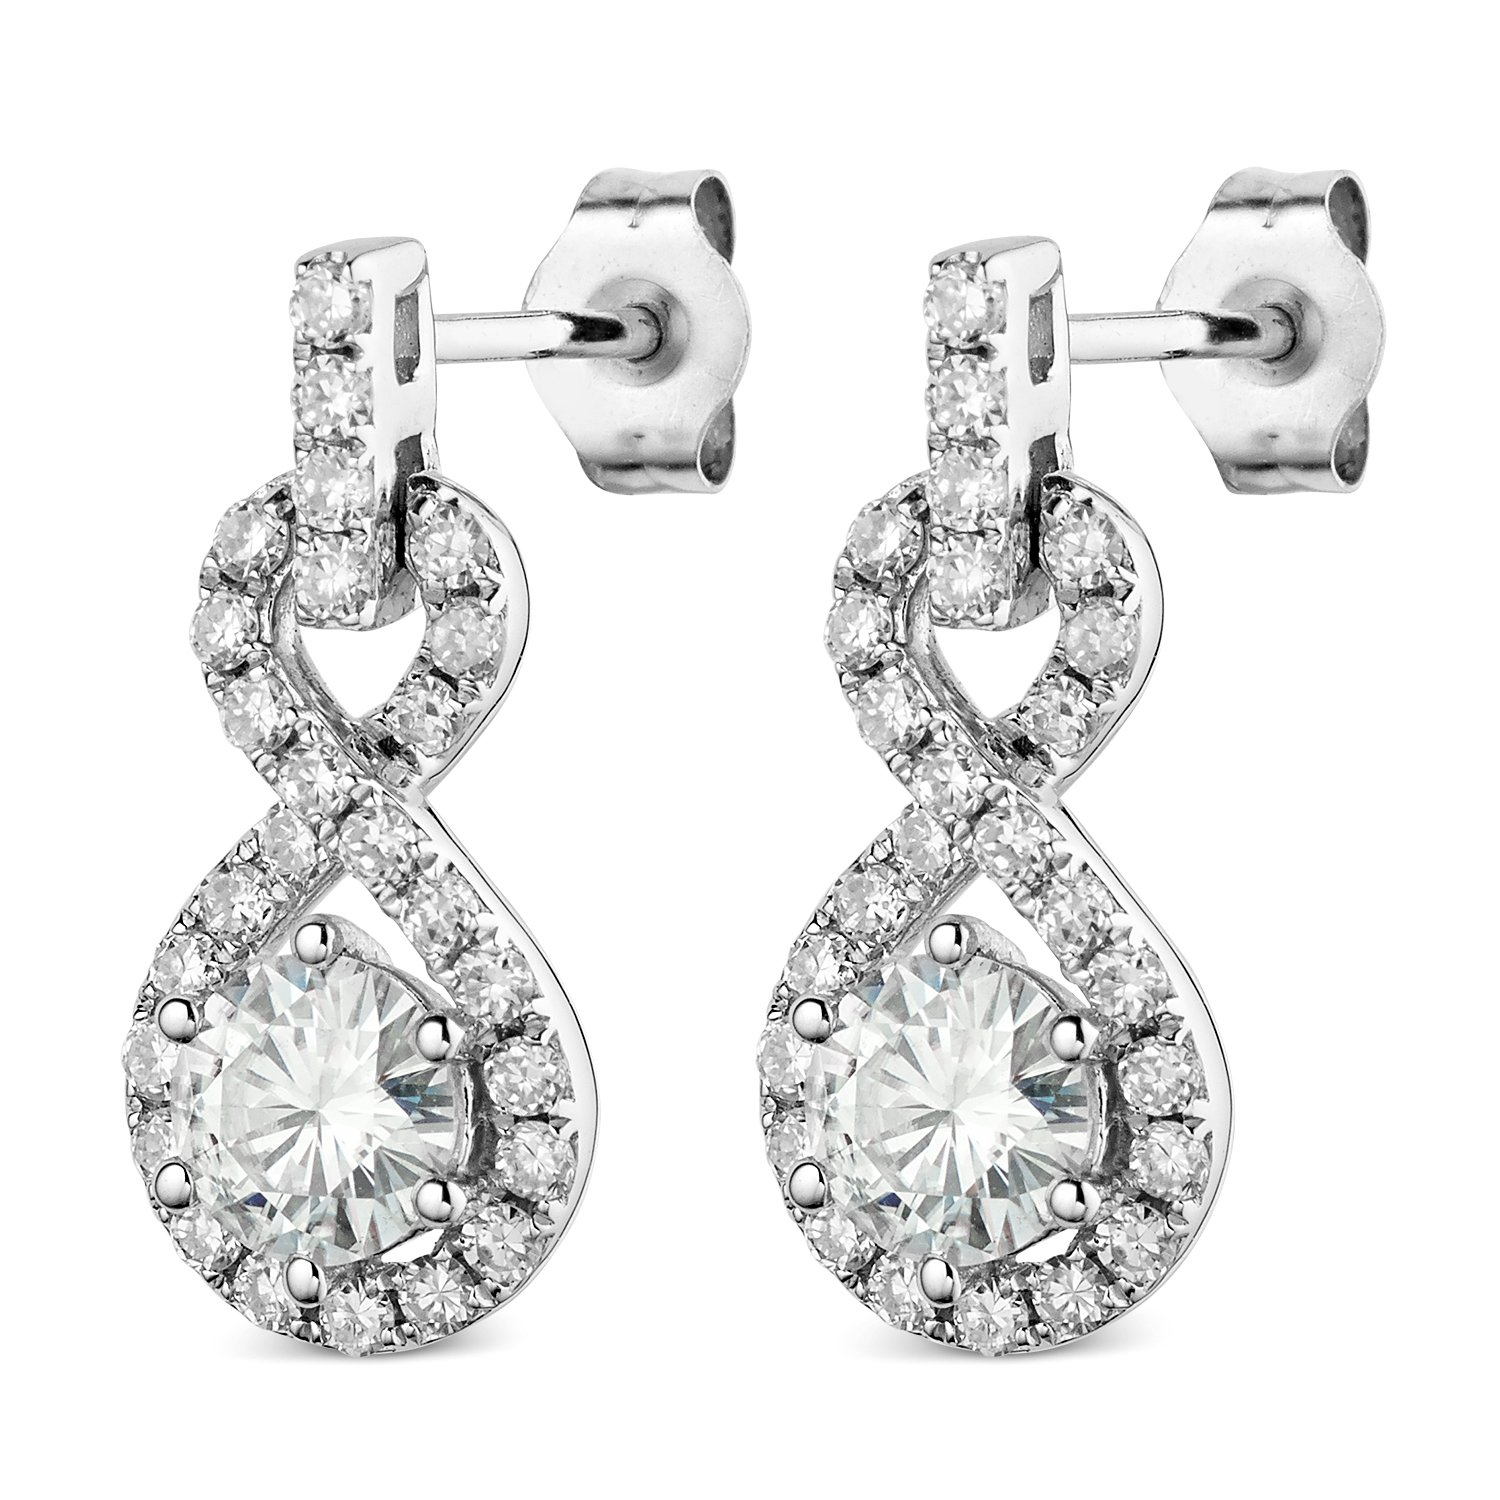 Forever Classic 5.0mm Round Cut Moissanite White Gold Dangle Earrings, 1.52cttw DEW By Charles & Colvard